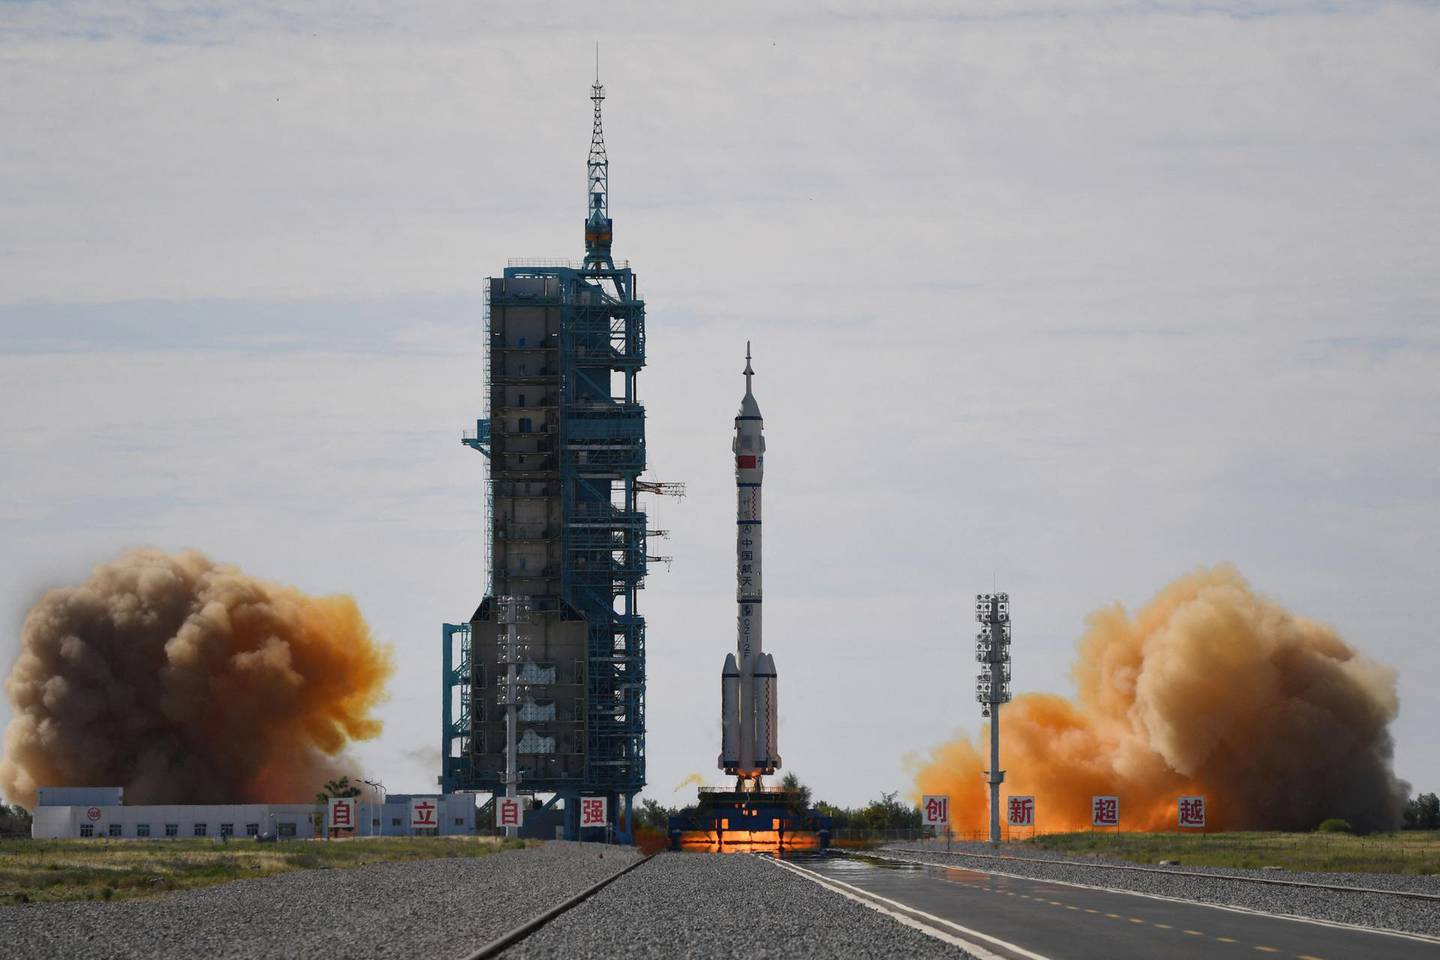 A Long March-2F carrier rocket, carrying the Shenzhou-12 spacecraft and a crew of three astronauts, lifts off from the Jiuquan Satellite Launch Centre in the Gobi desert in northwest China on June 17, 2021, the first crewed mission to China's new space station.  / AFP / GREG BAKER